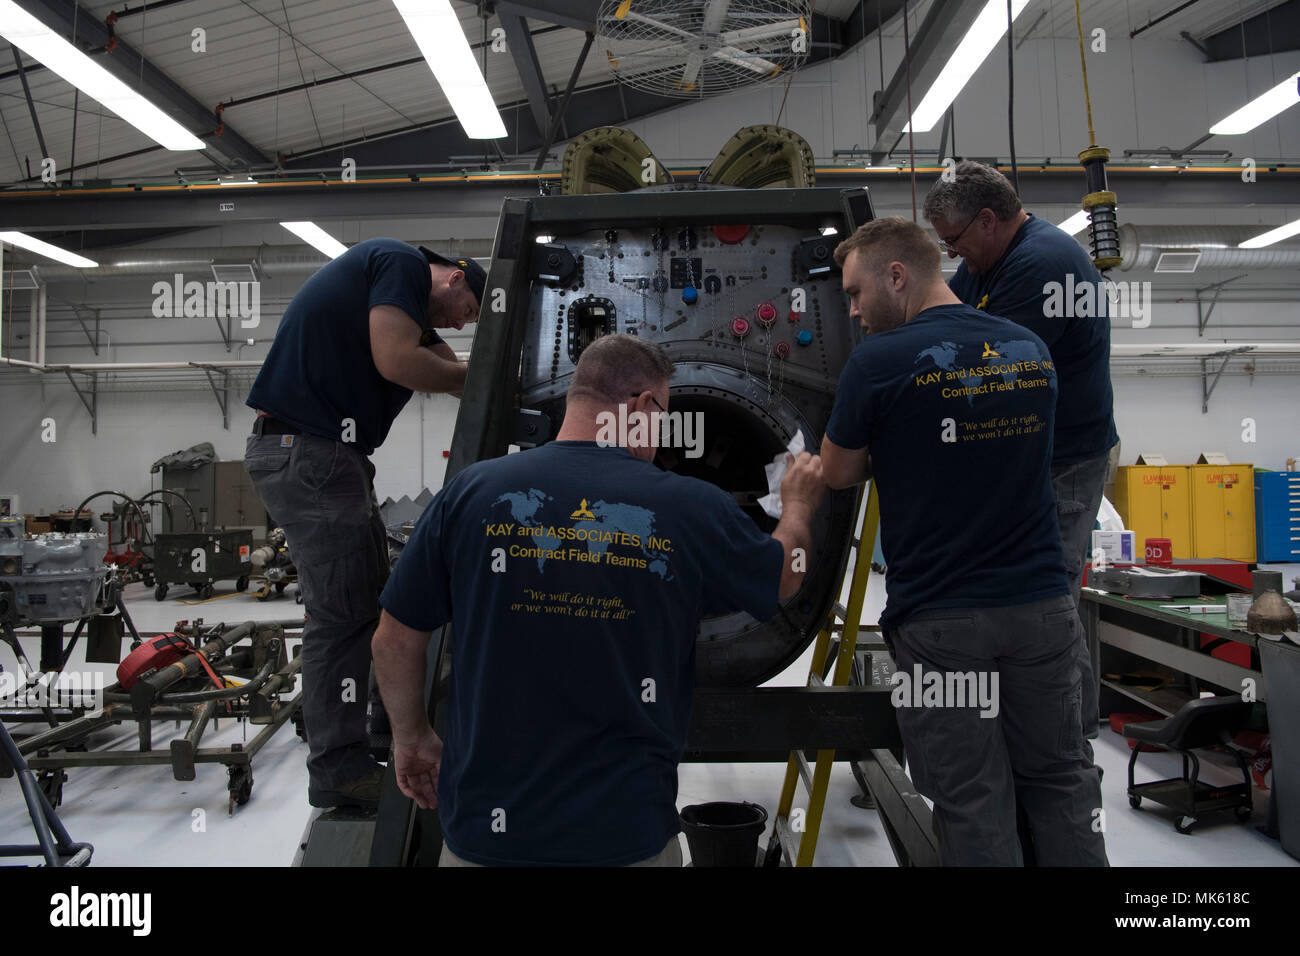 Wiring Harness Stock Photos Images Alamy For Vehicle James Duty An Airplane Mechanic Contracted Through Kay And Associates Inc Clips A